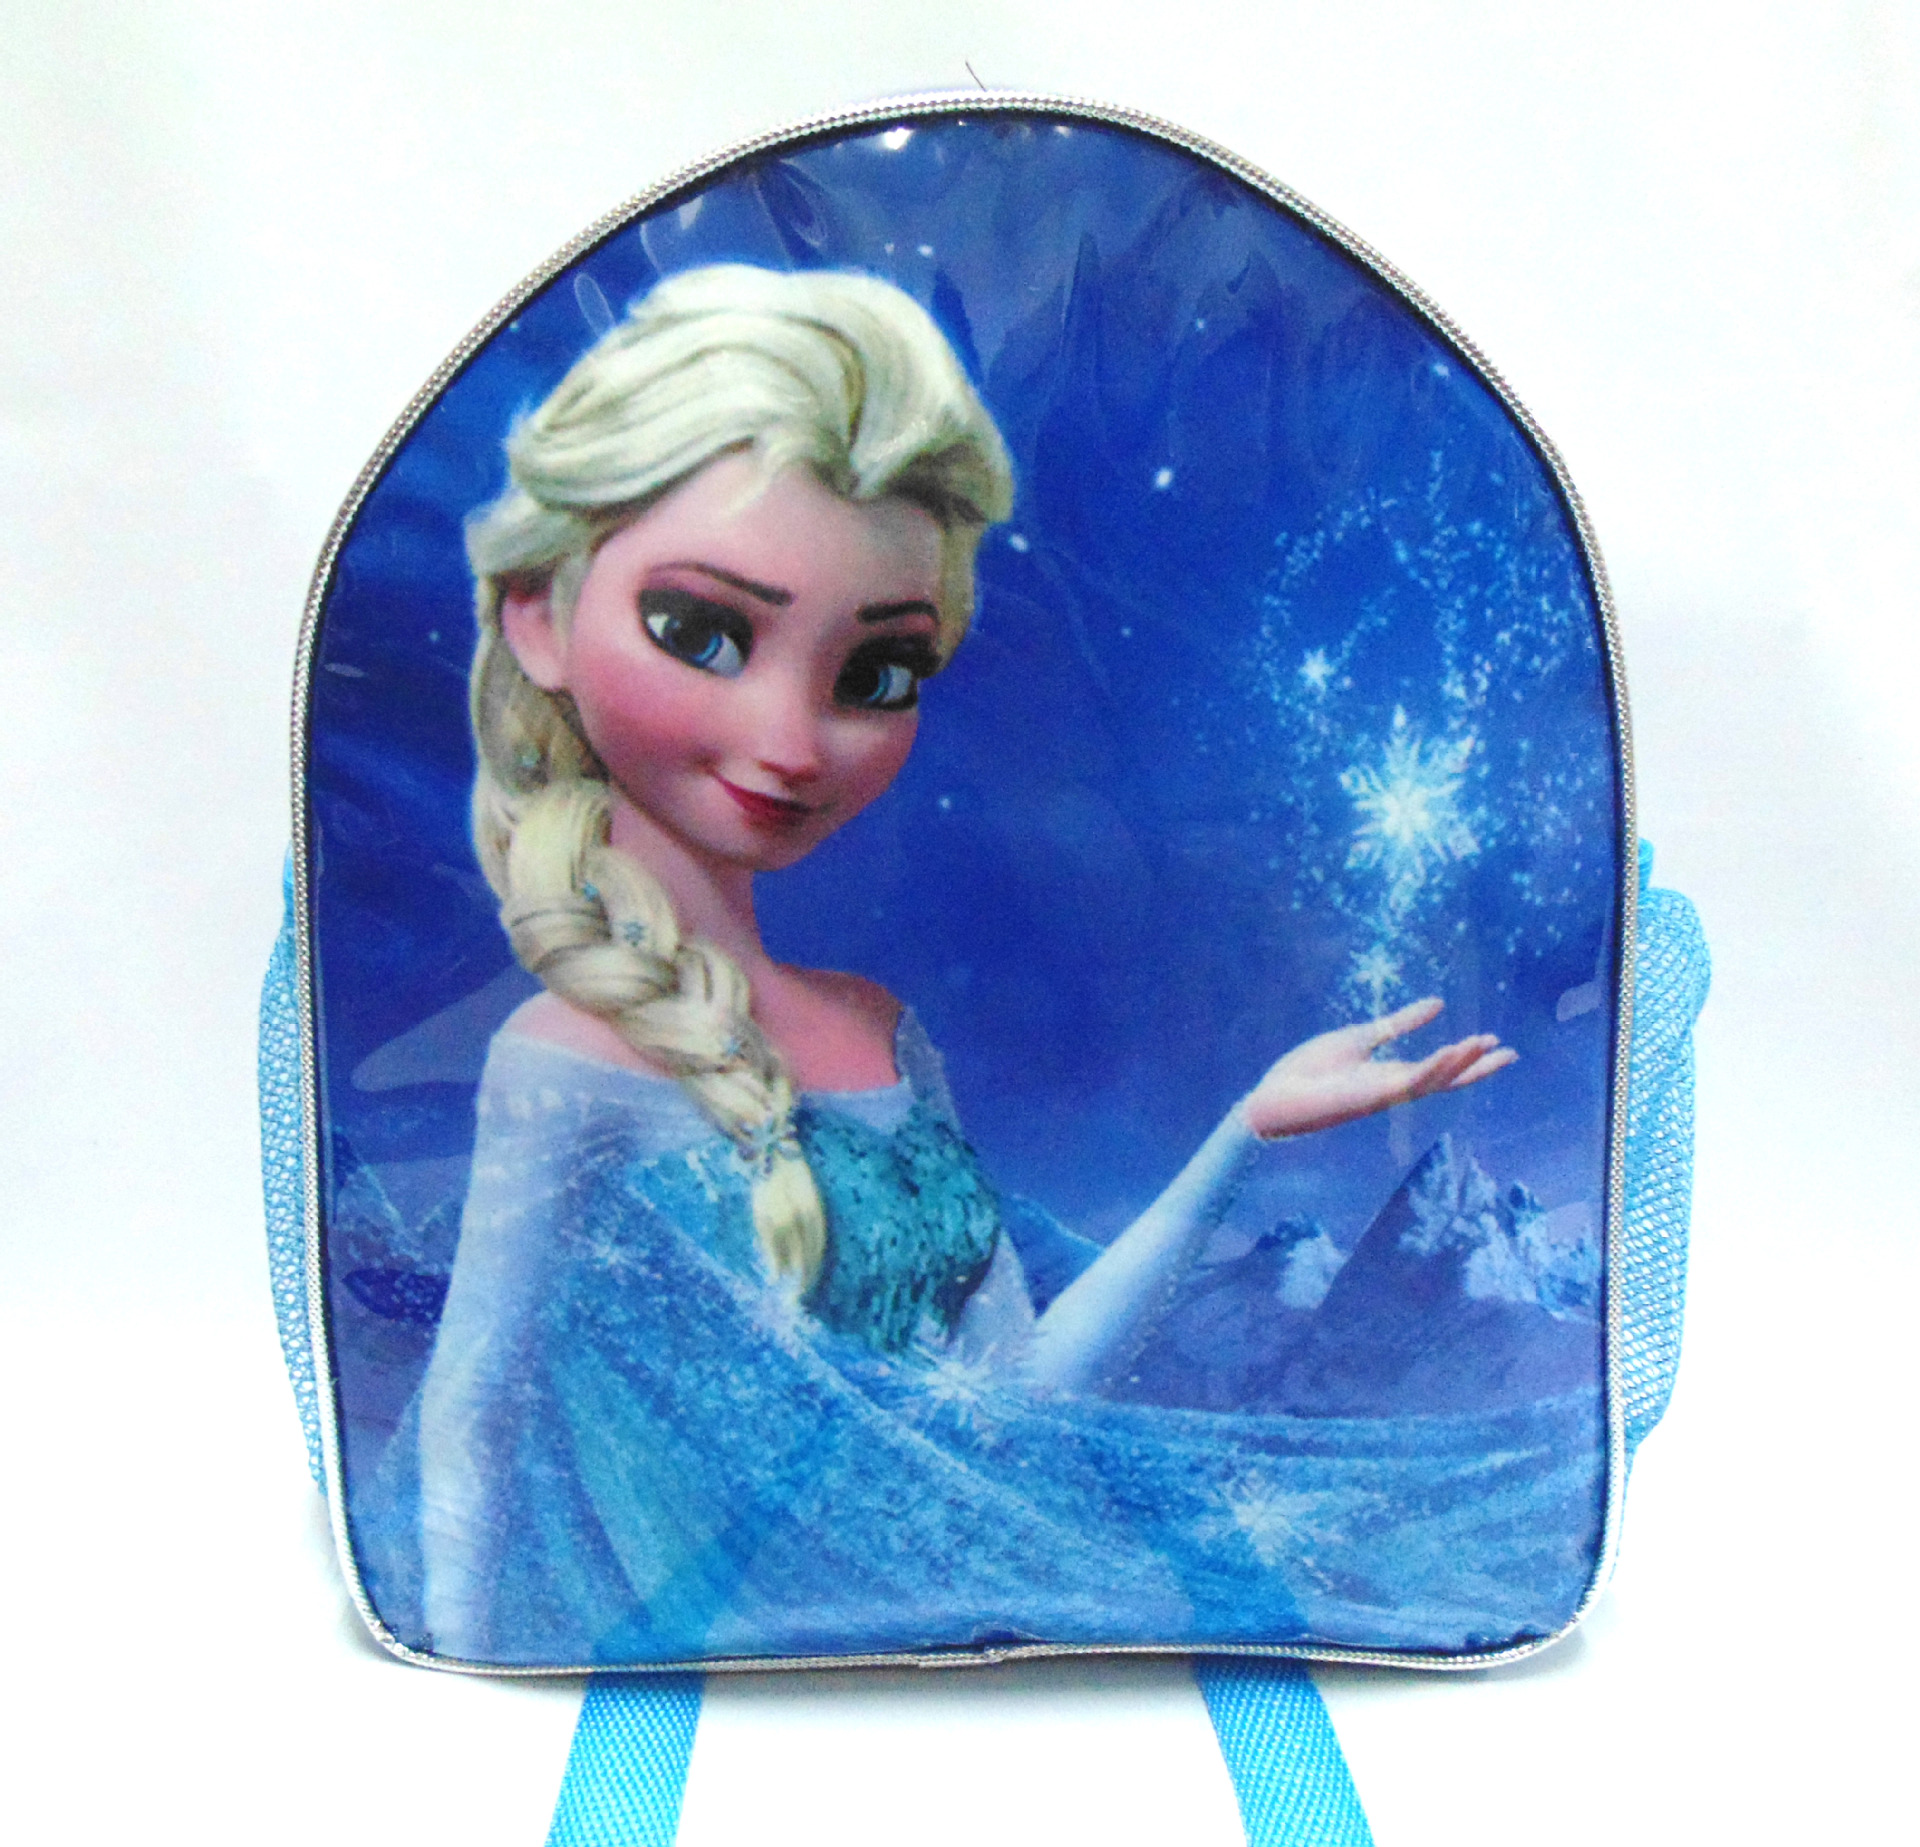 2018 Cartoon Princess Elsa Backpack School Bags for Girls Children Mini Schoolbag Kids Bookbags Kindergarten Mochila